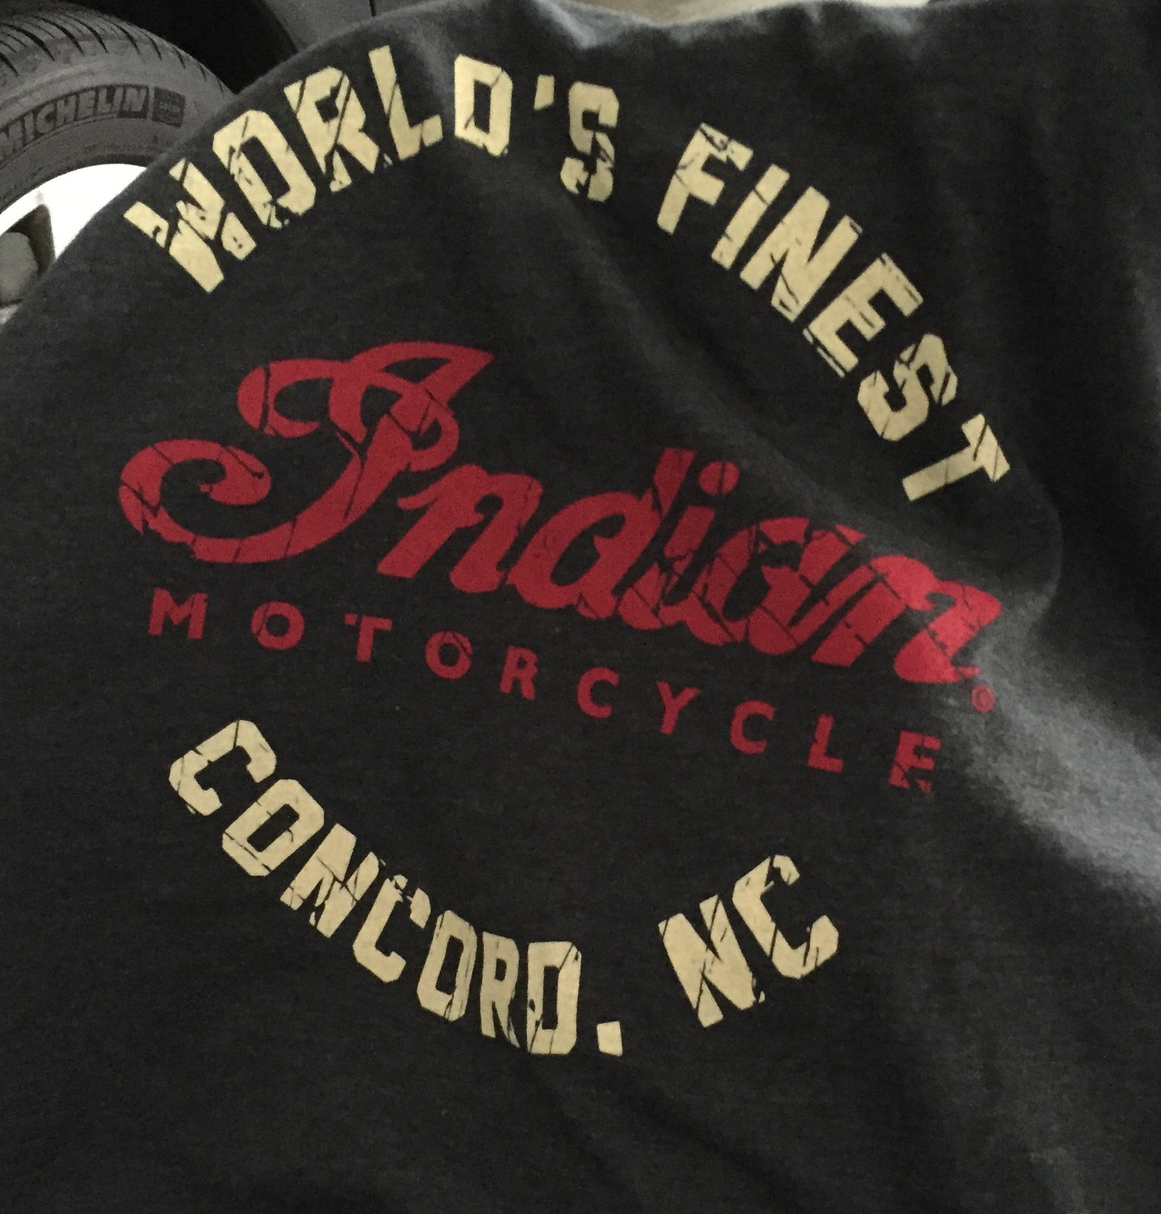 Traded in an old t-shirt for a new one from Indian Motorcycles of Concord